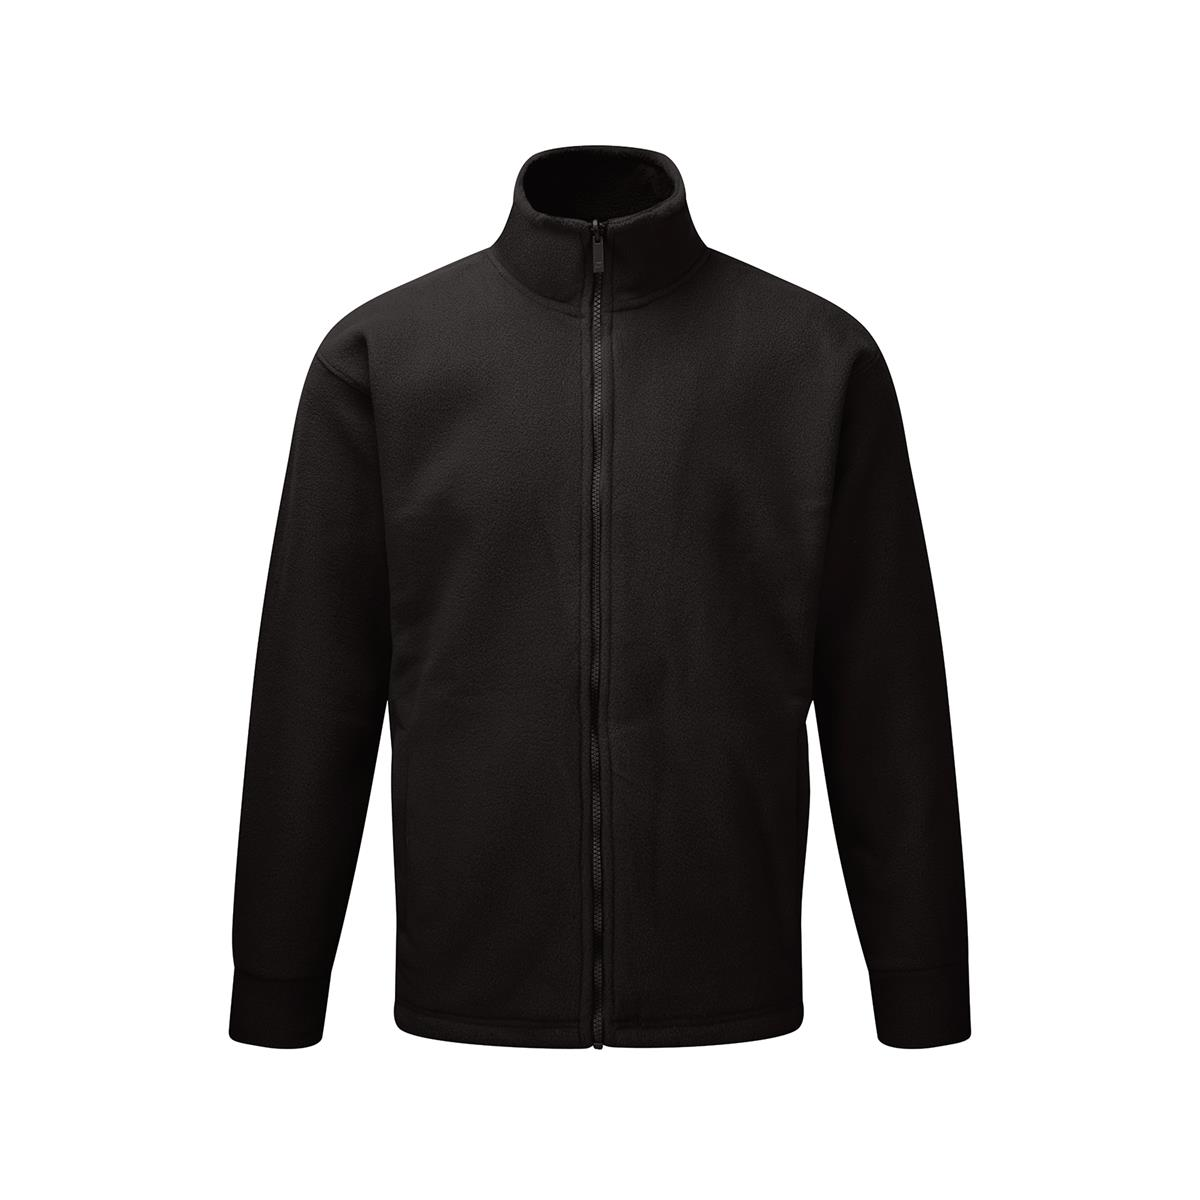 Image for Basic Fleece Jacket Elasticated Cuffs and Full Zip Front Extra Large Black 1-3 Days Lead Time